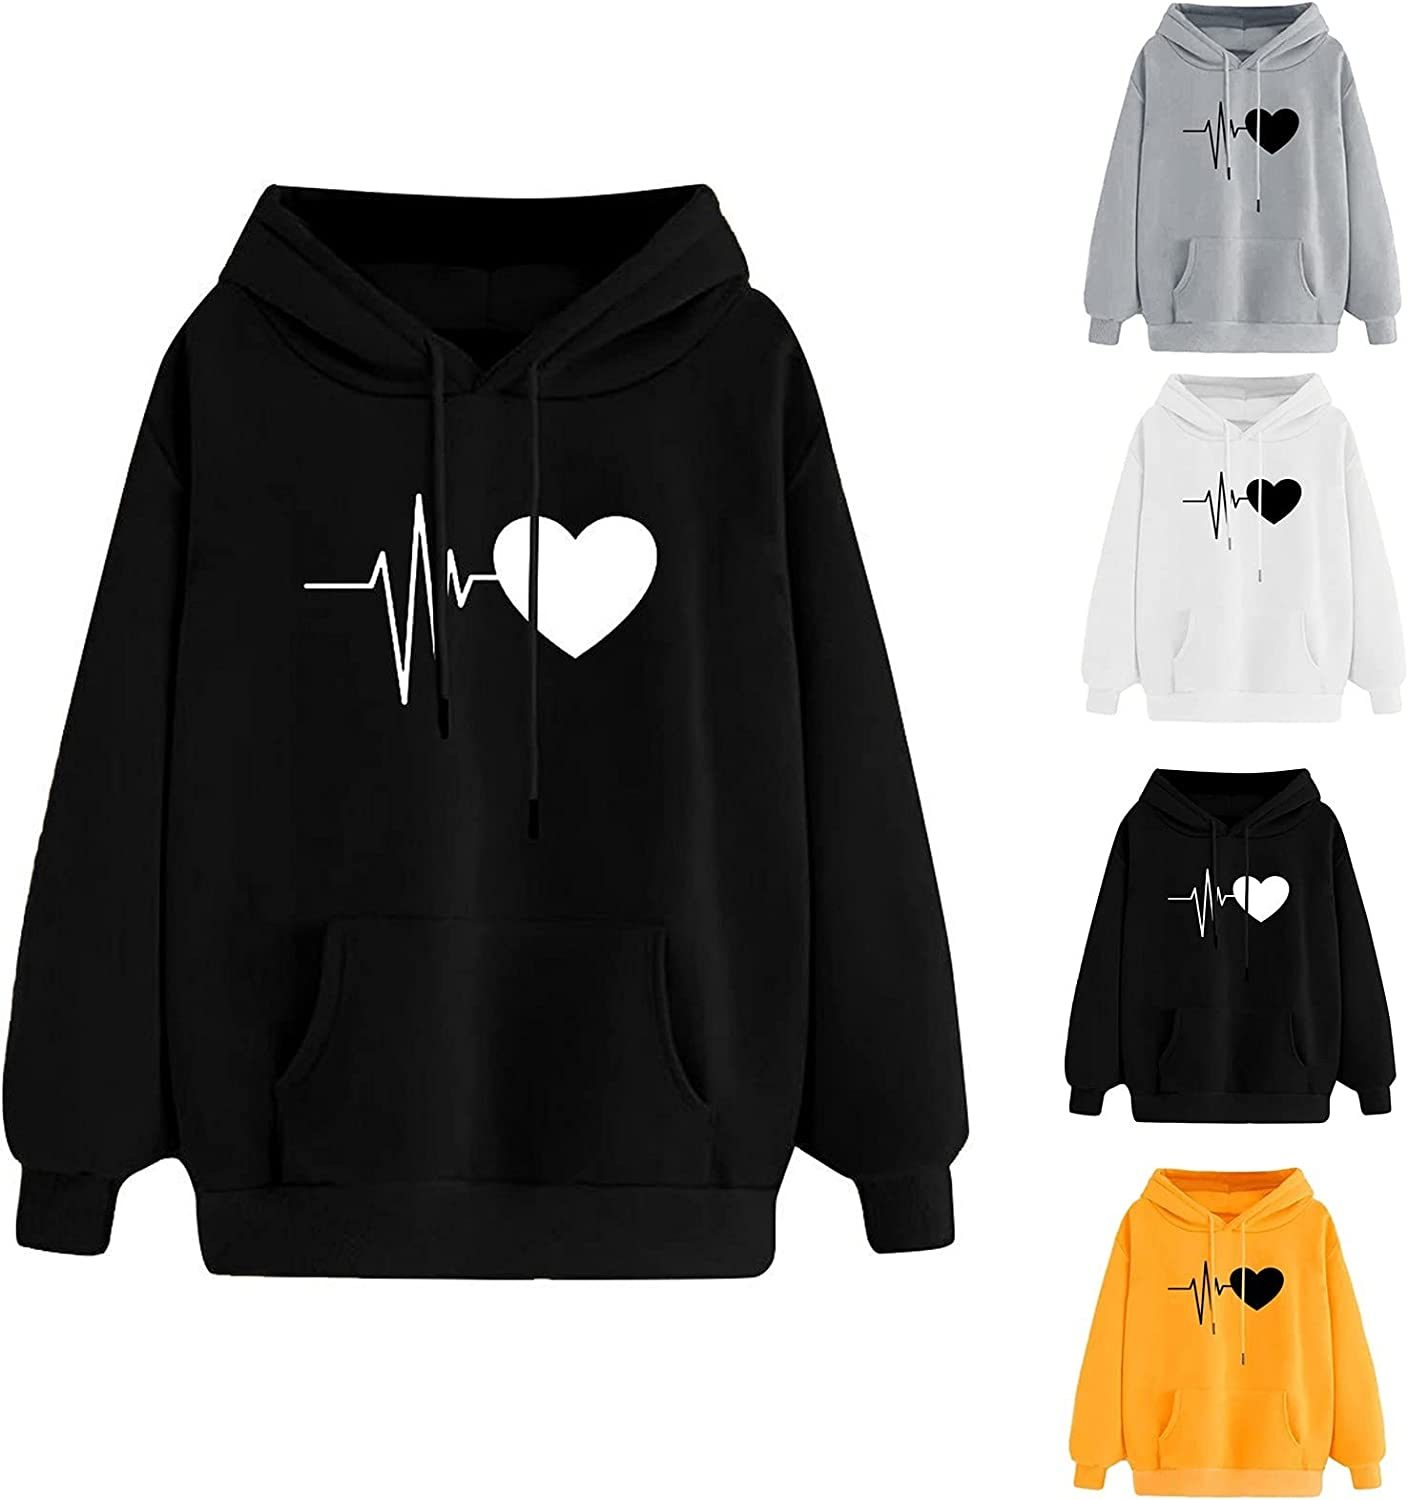 Hoodie for Women Funny Love Printing Sweatshirt Autumn Winter Pullover Solid Color Loose Comfortable Long Sleeve